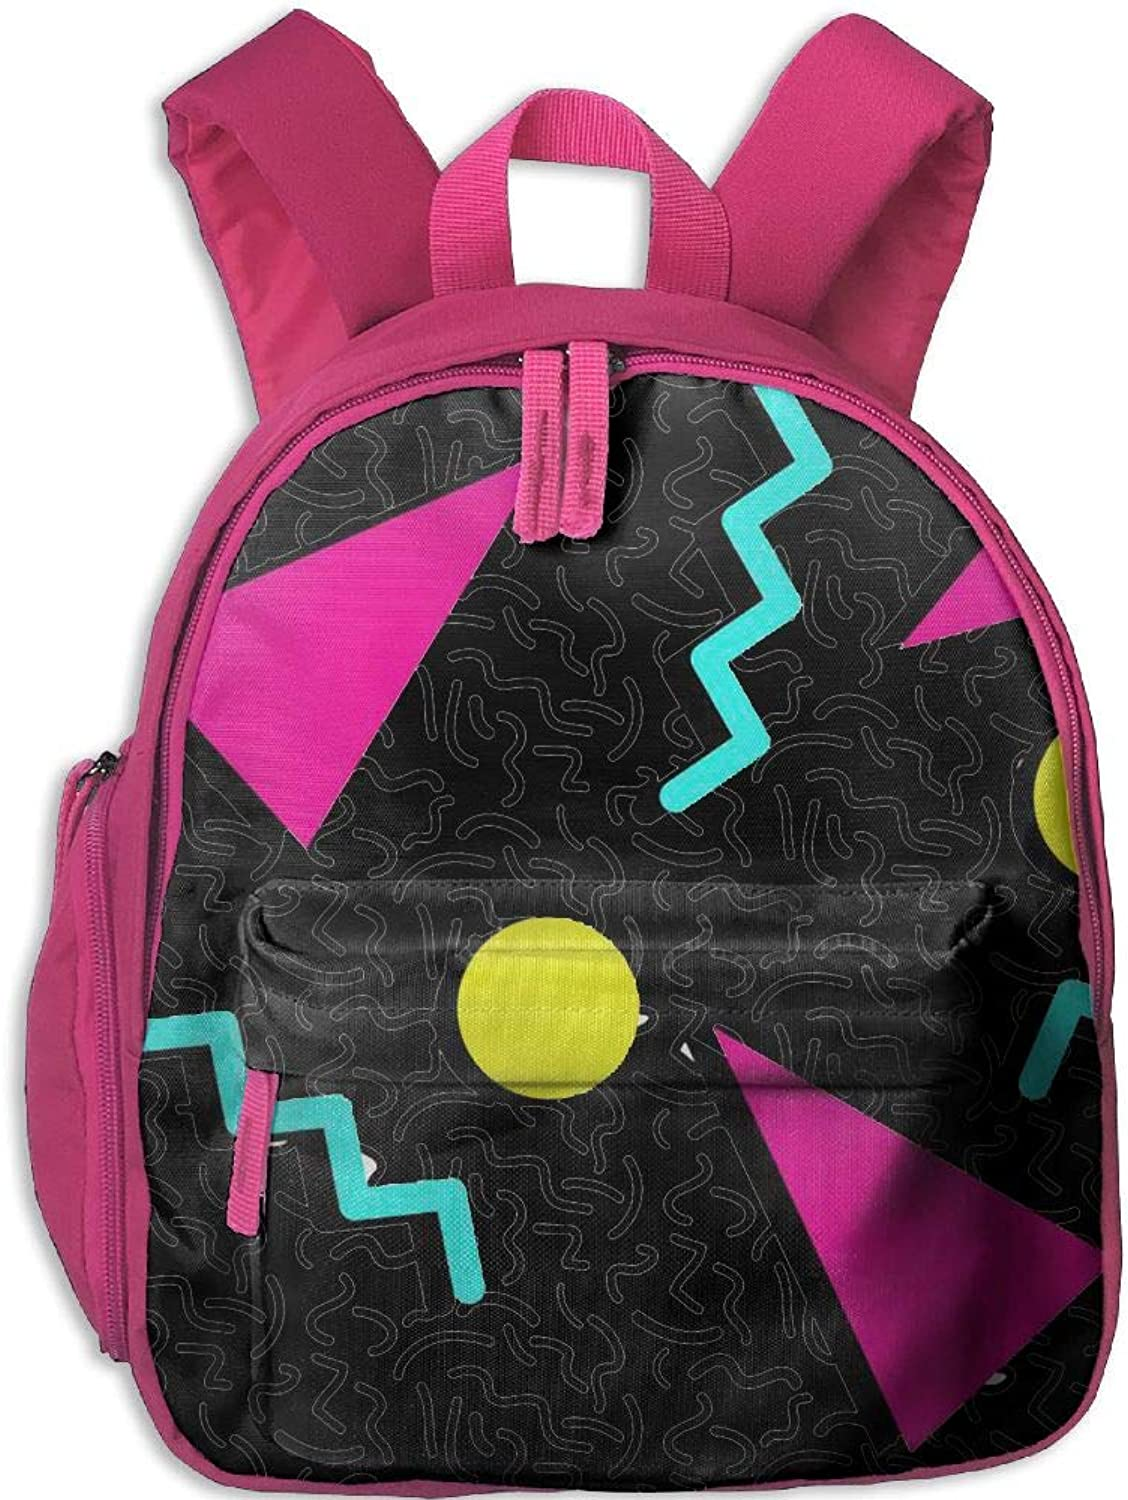 Pinta 80s Memphis Cub Cool School Book Bag Backpacks for Girl's Boy's